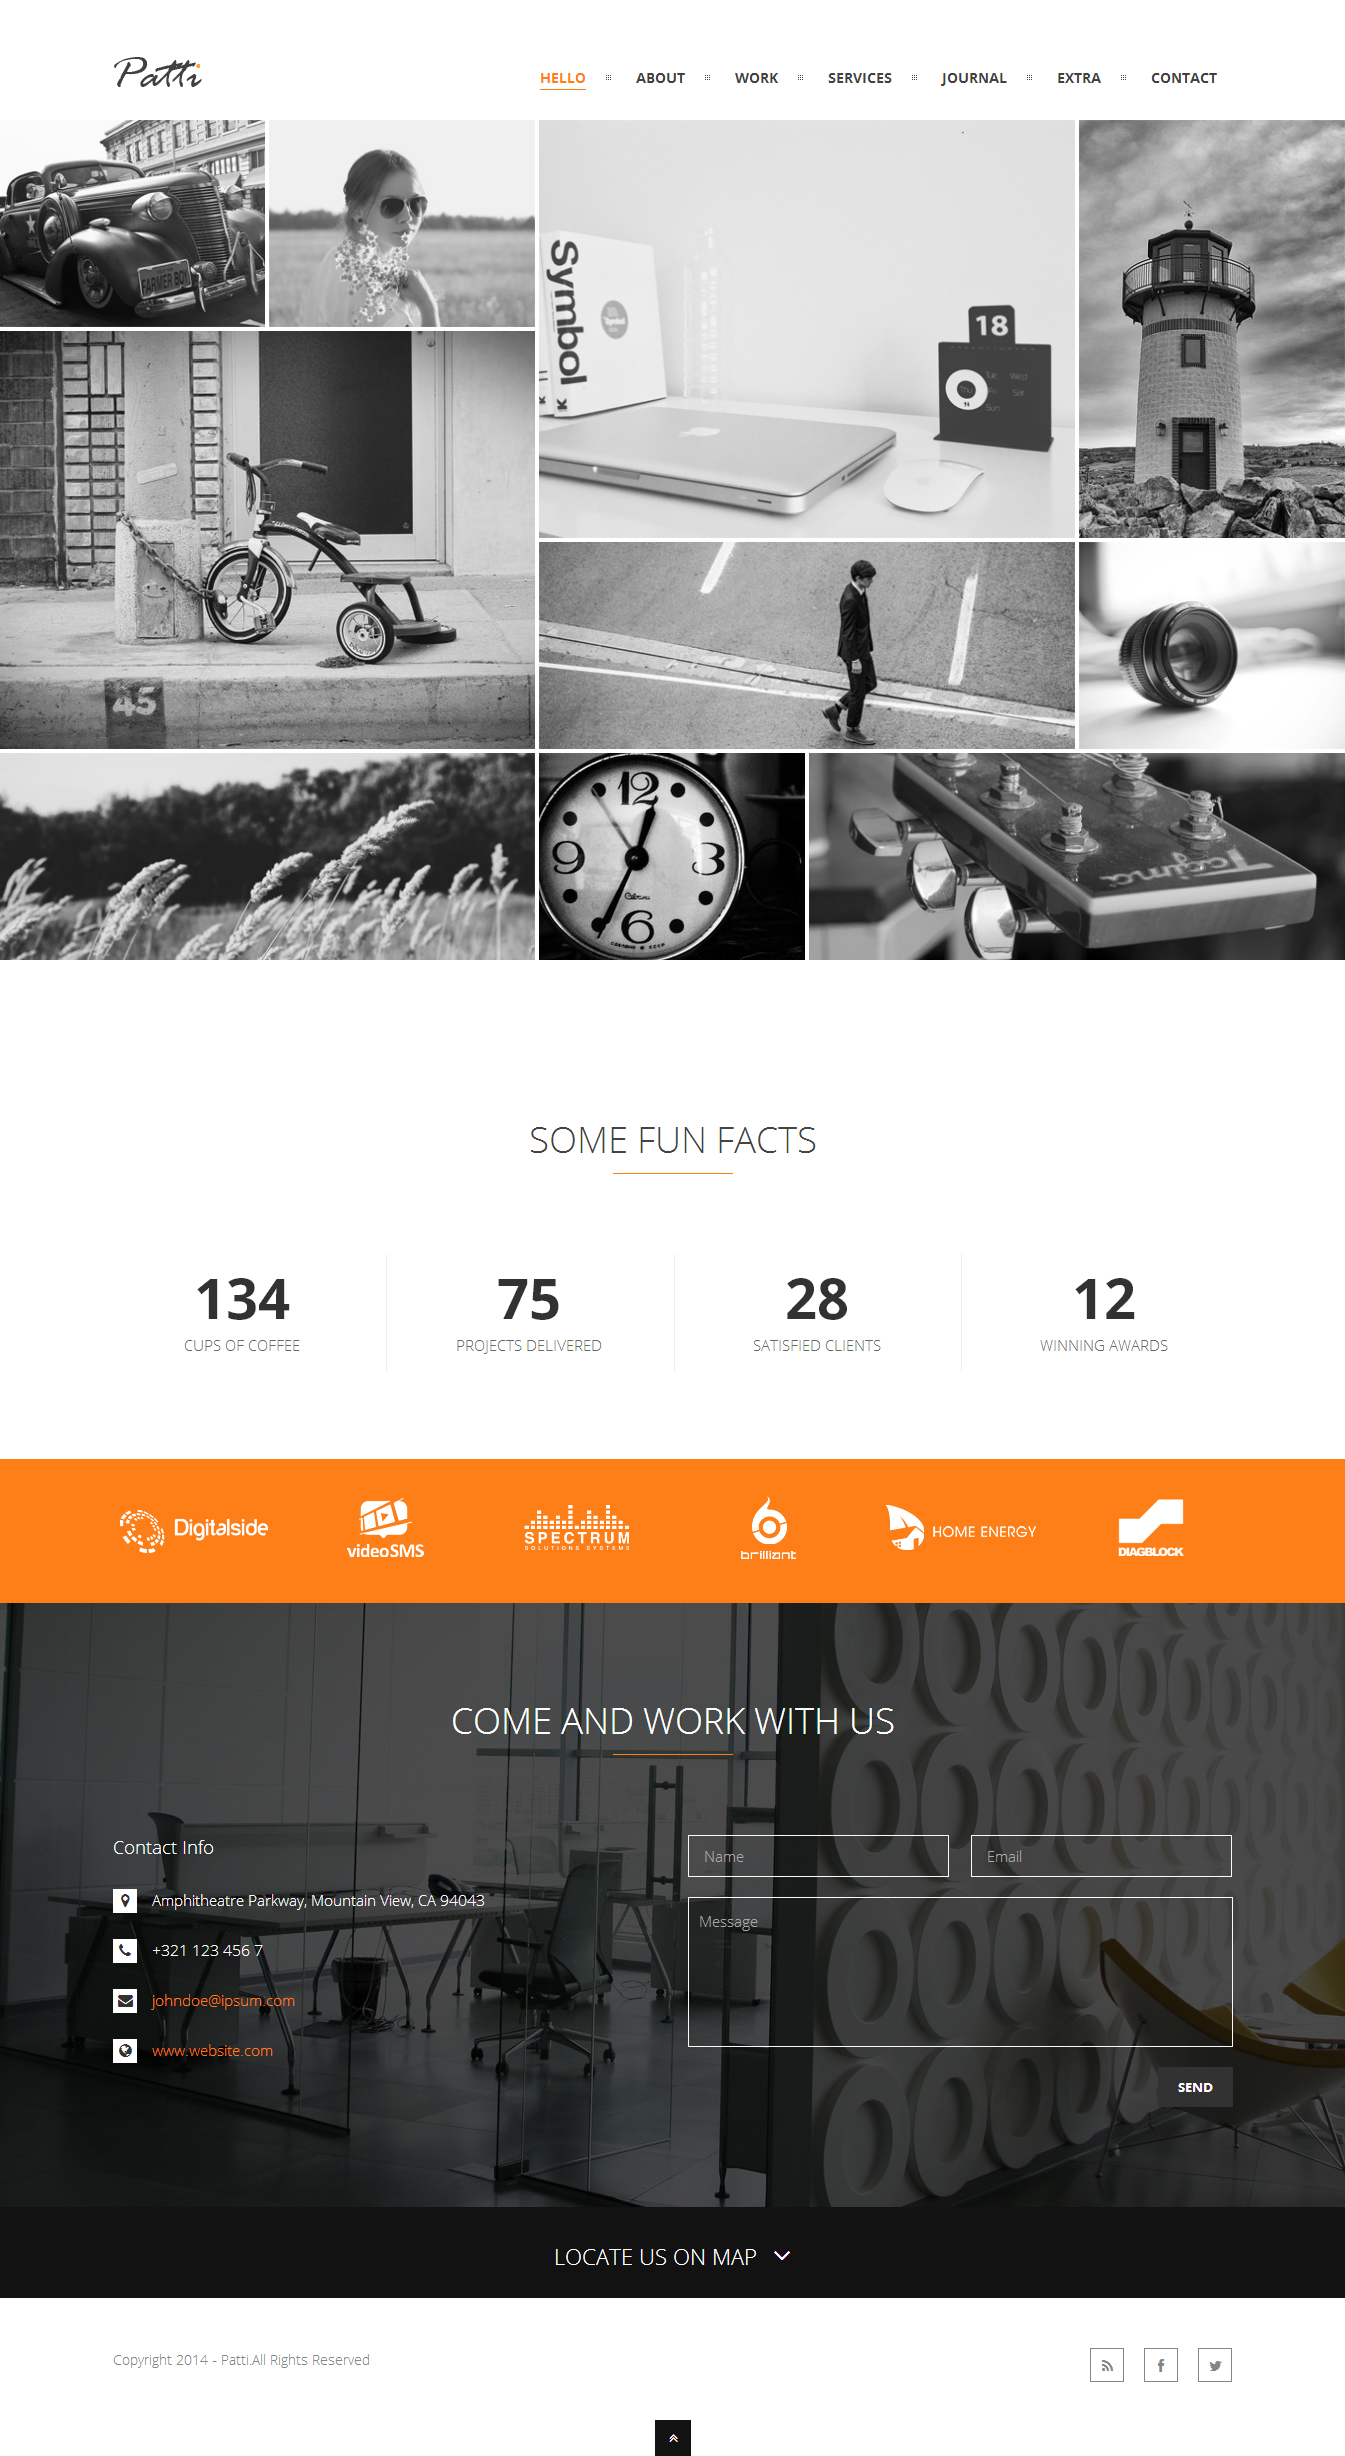 Patti - A One-Page Parallax WordPress Theme by pseudonymus2004